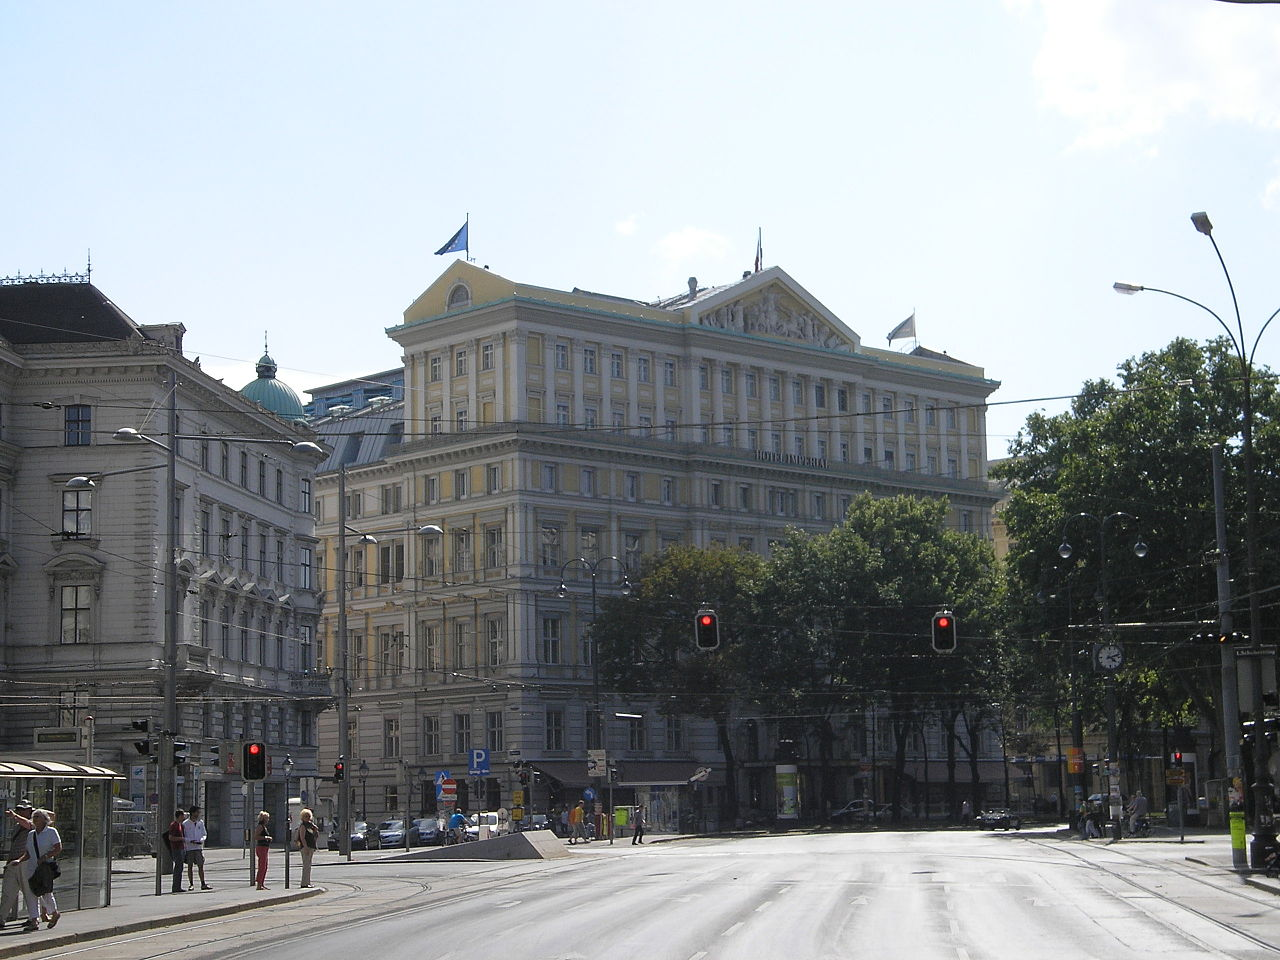 Starwood Hotels & Resorts sells Hotel Imperial, a Luxury Collection hotel, Vienna